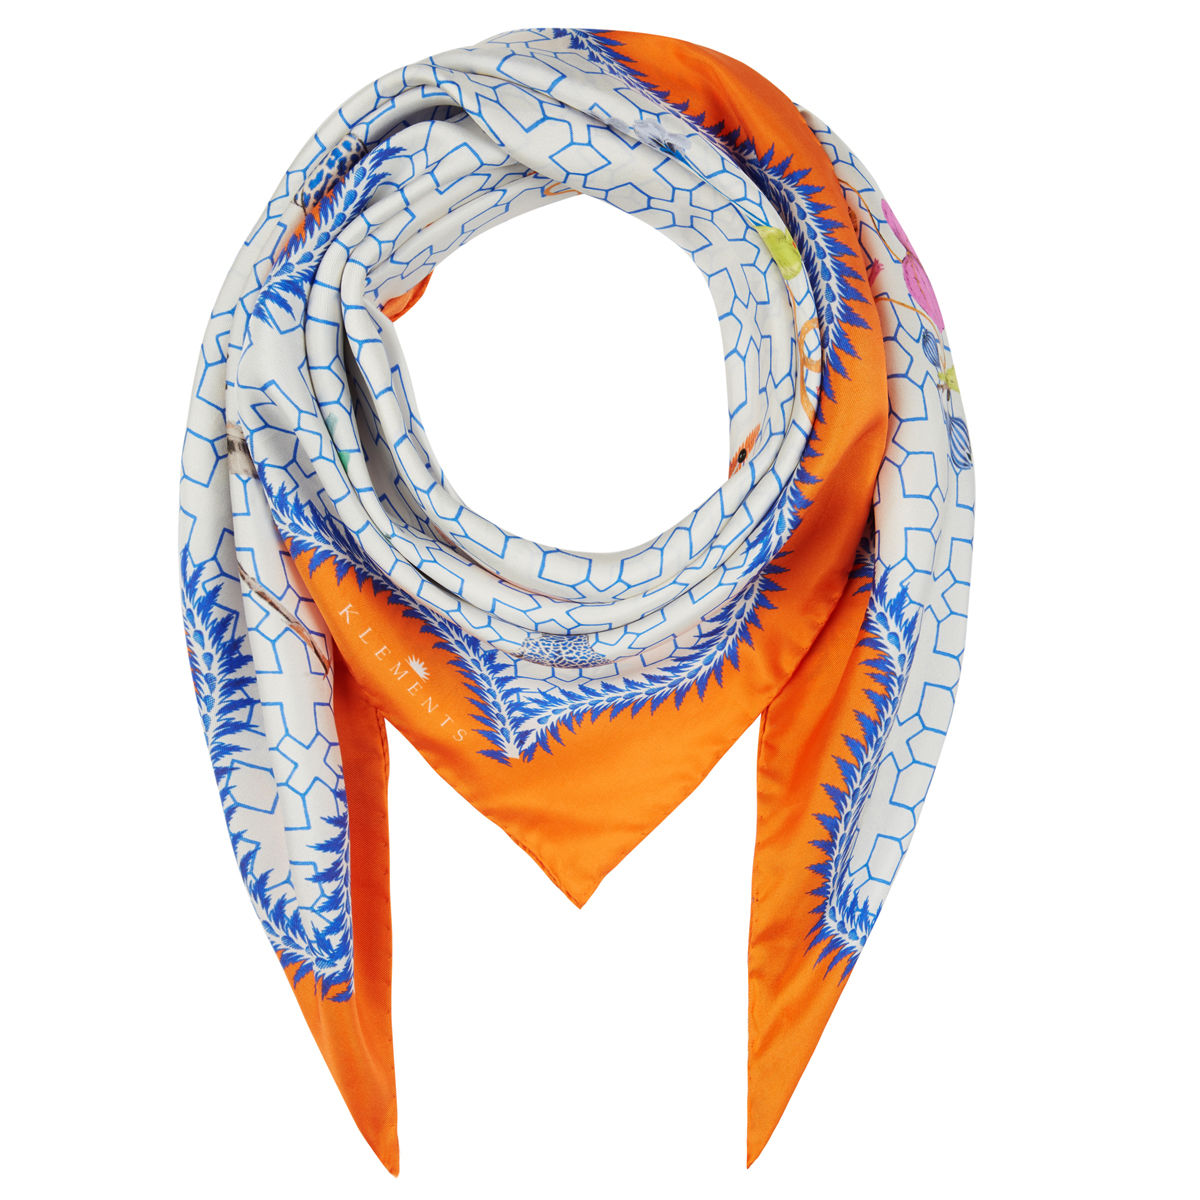 Medium scarf in Bamboo Jungle print - product images  of